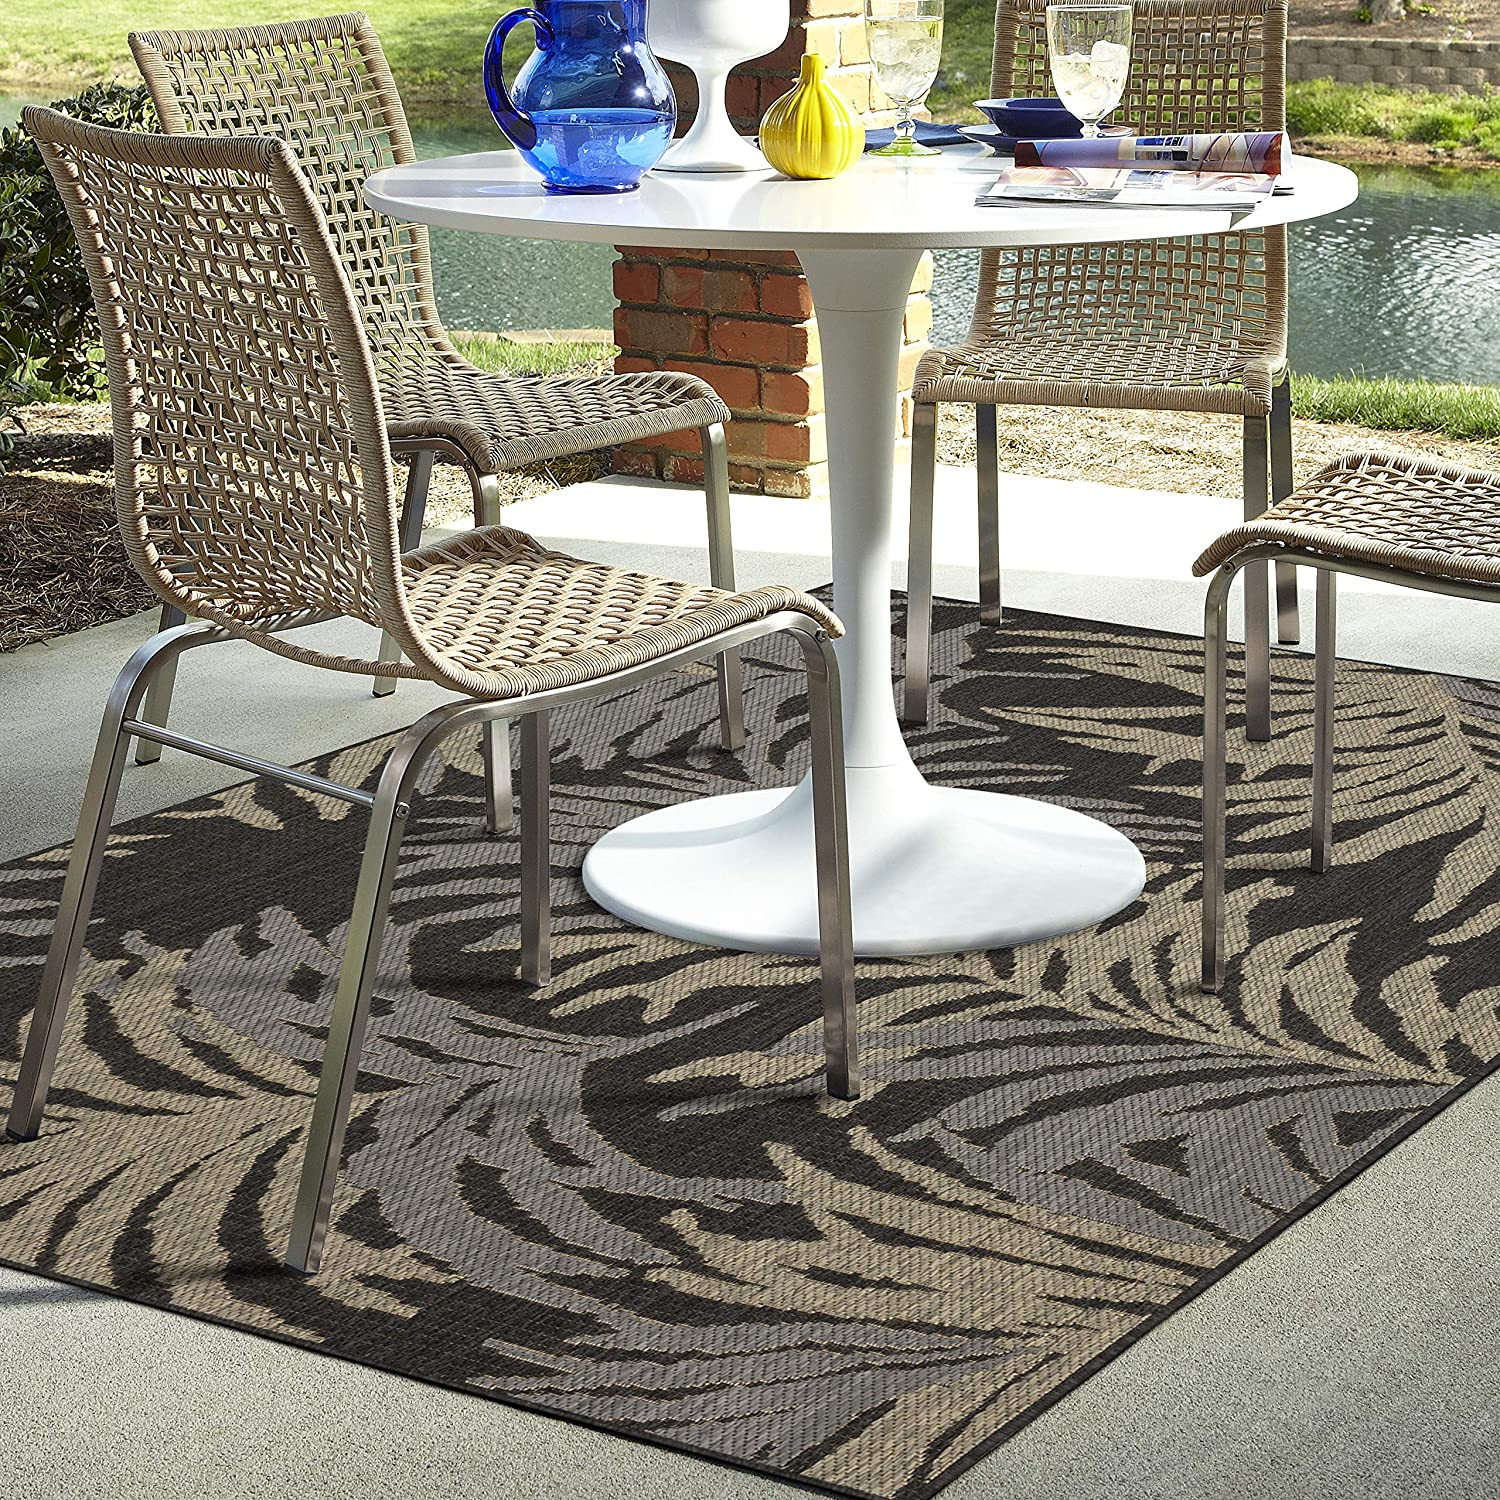 Mohawk Kennedee Charcoal (8' X 10') Outdoor Patio Rug